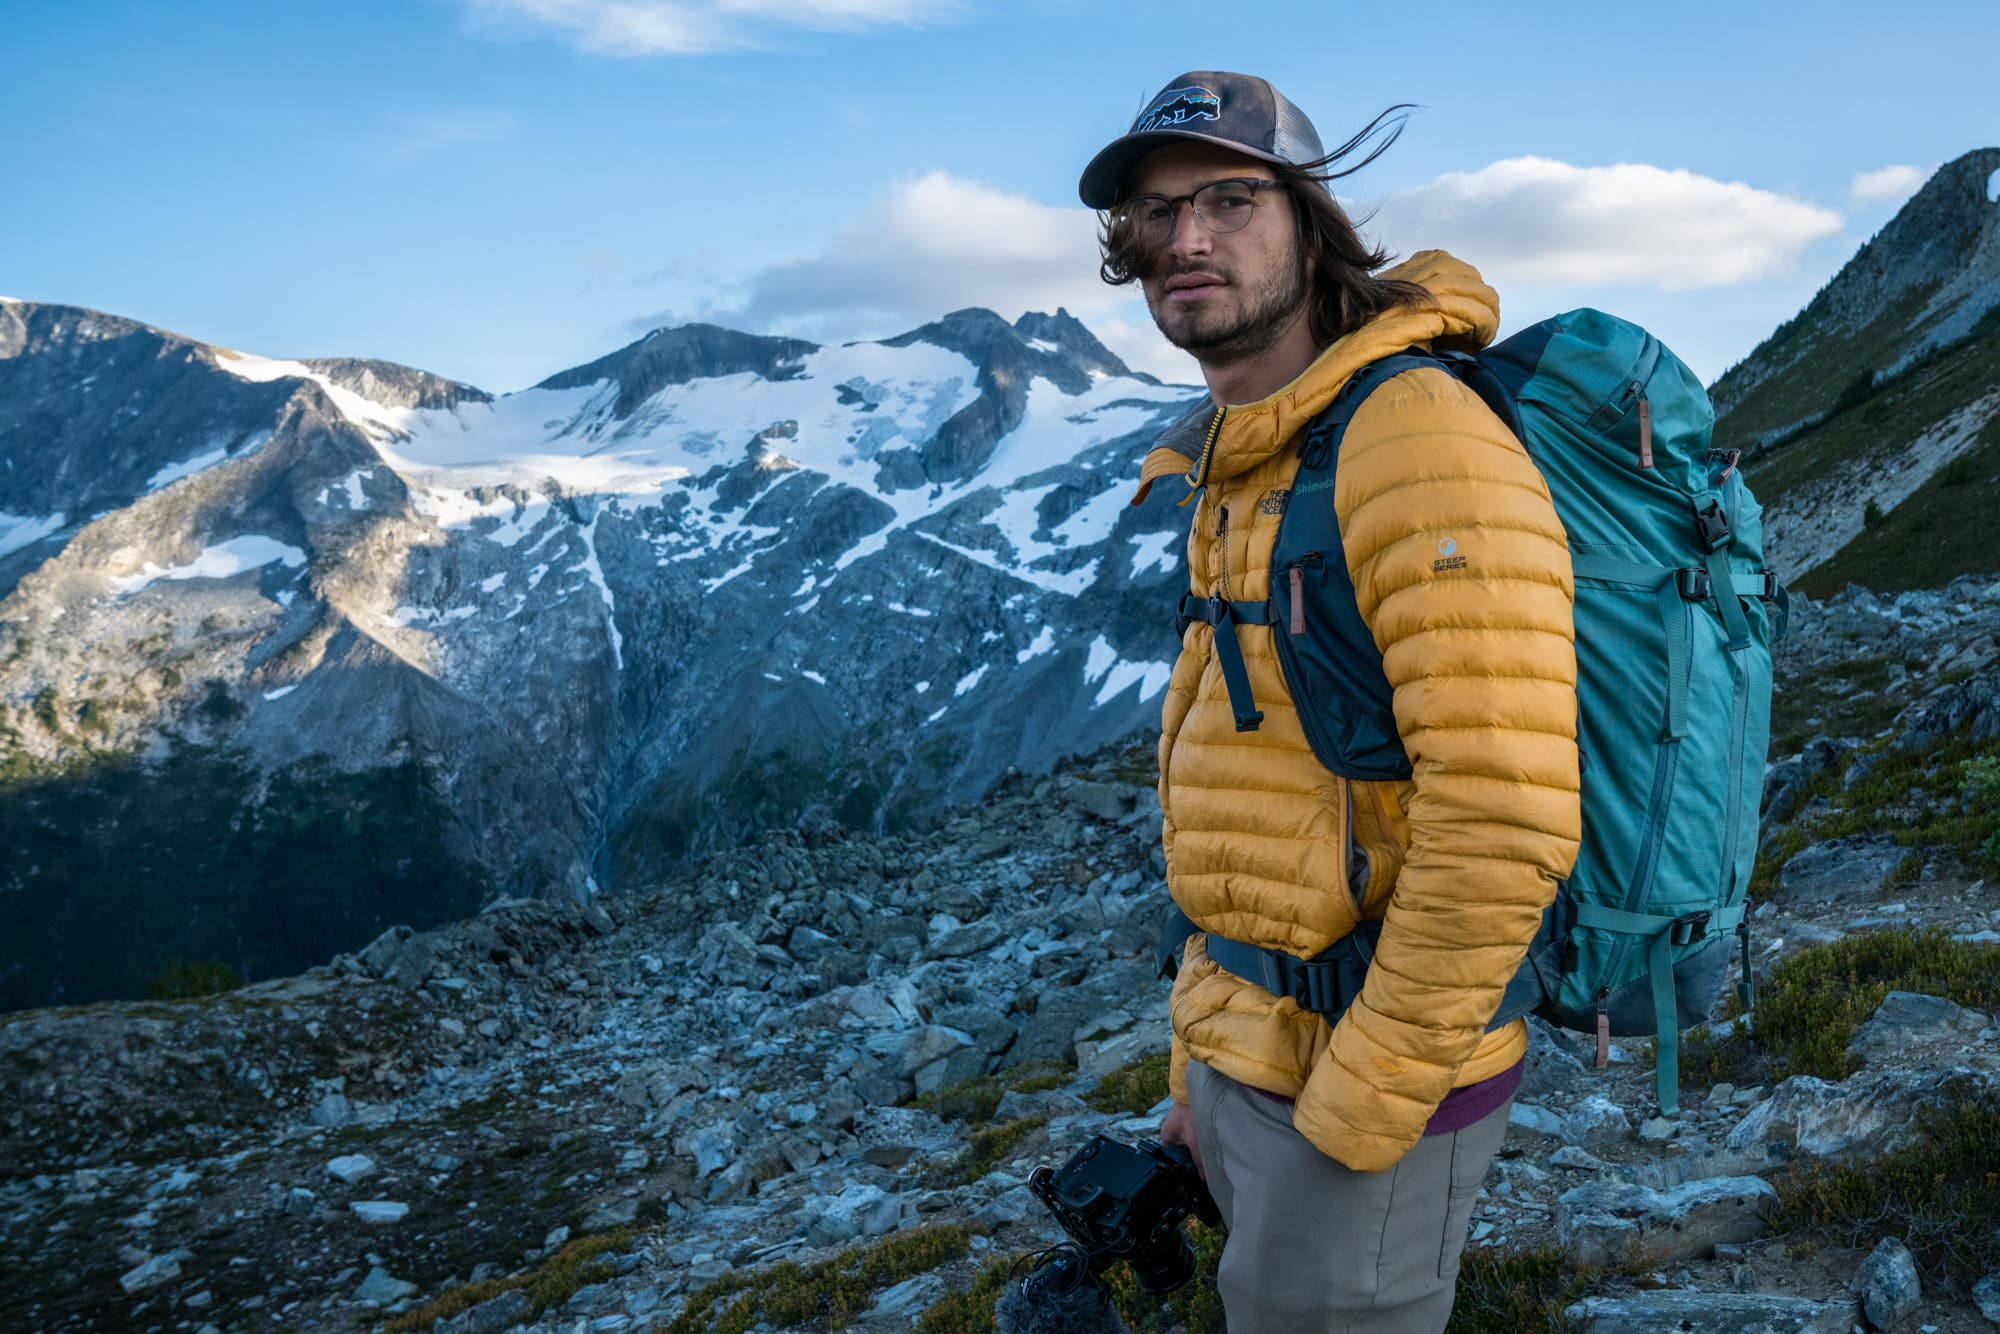 The Shimoda Explore 40 and 60 Backpacks Claim to be the Ultimate Adventure Photography Packs